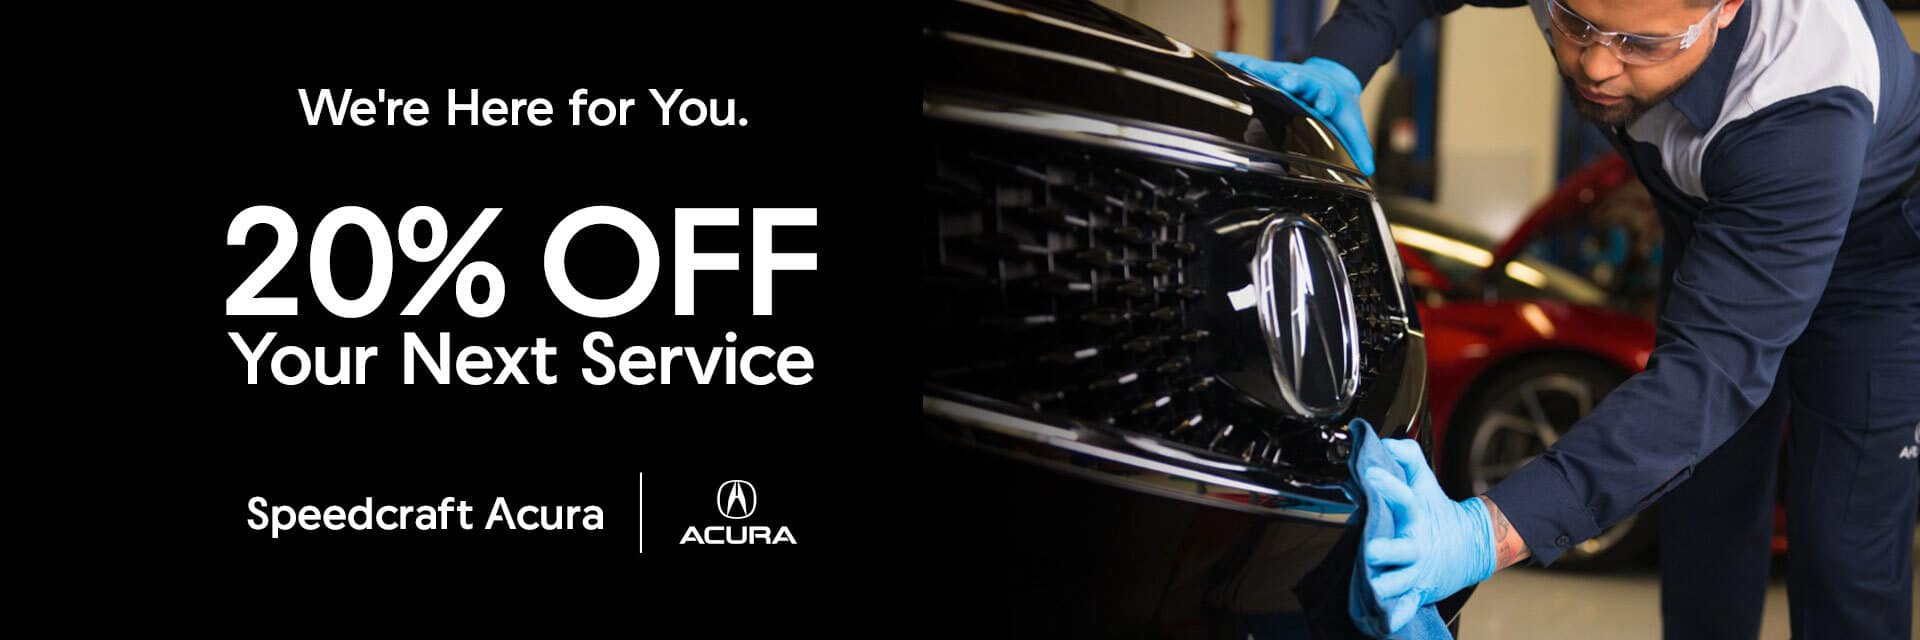 Speedcraft Acura 20% Discount on Service Special